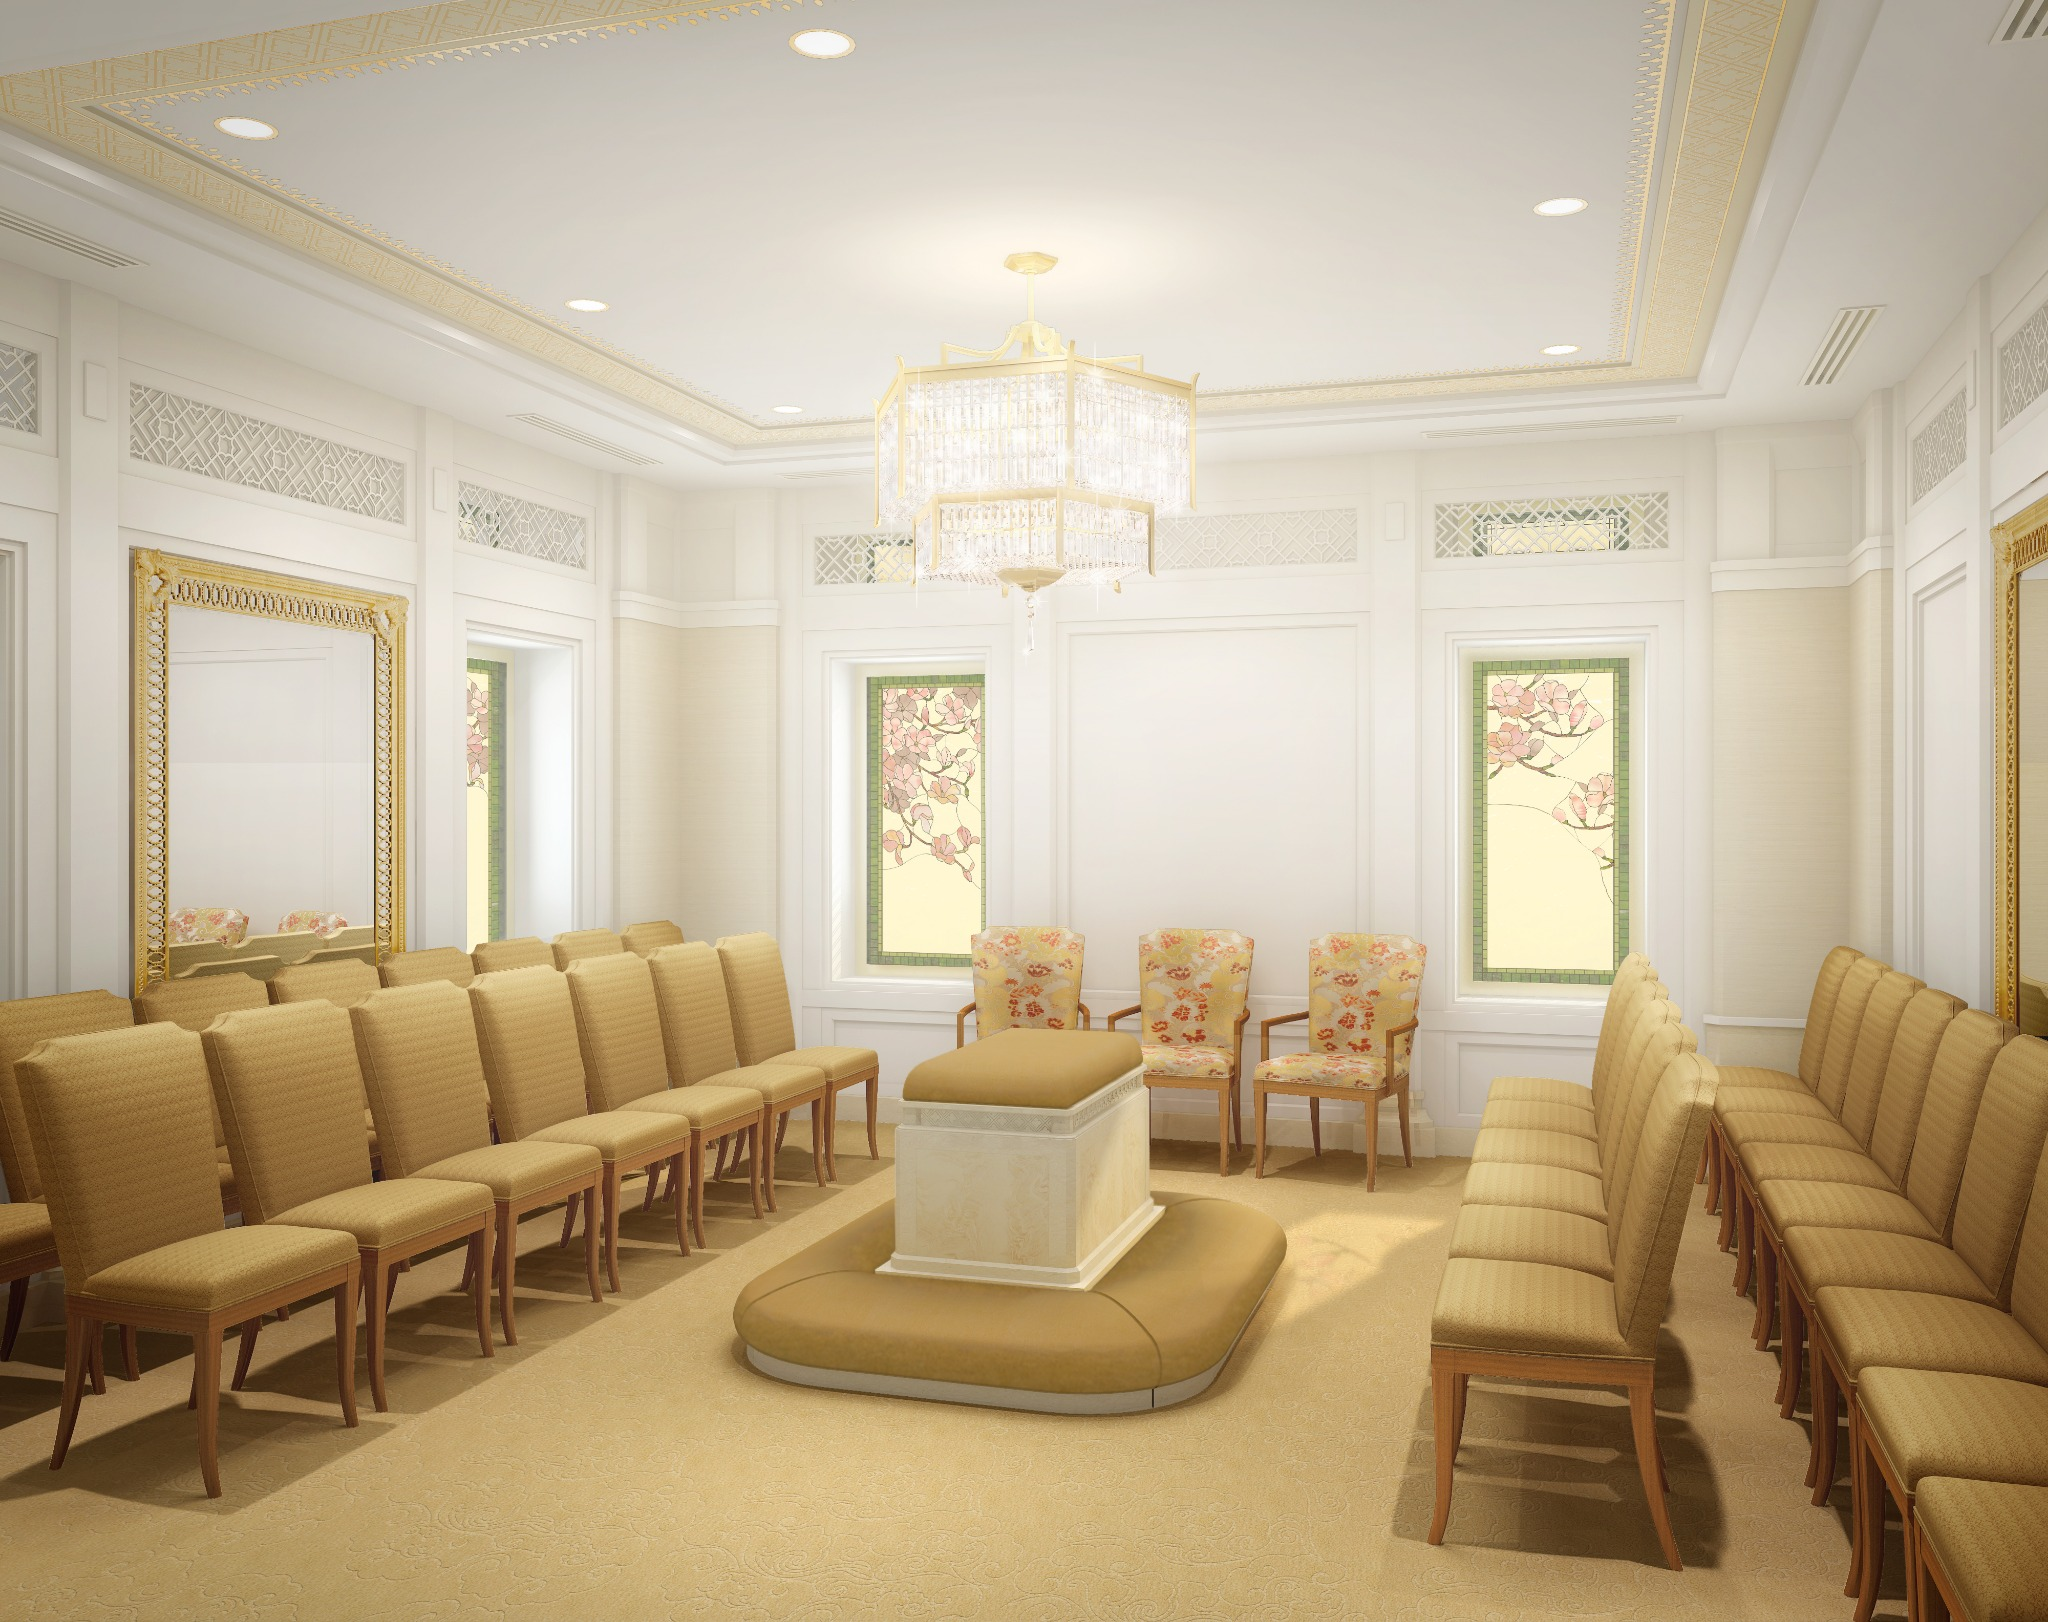 Rendering of a sealing room in the Hong Kong China Temple.